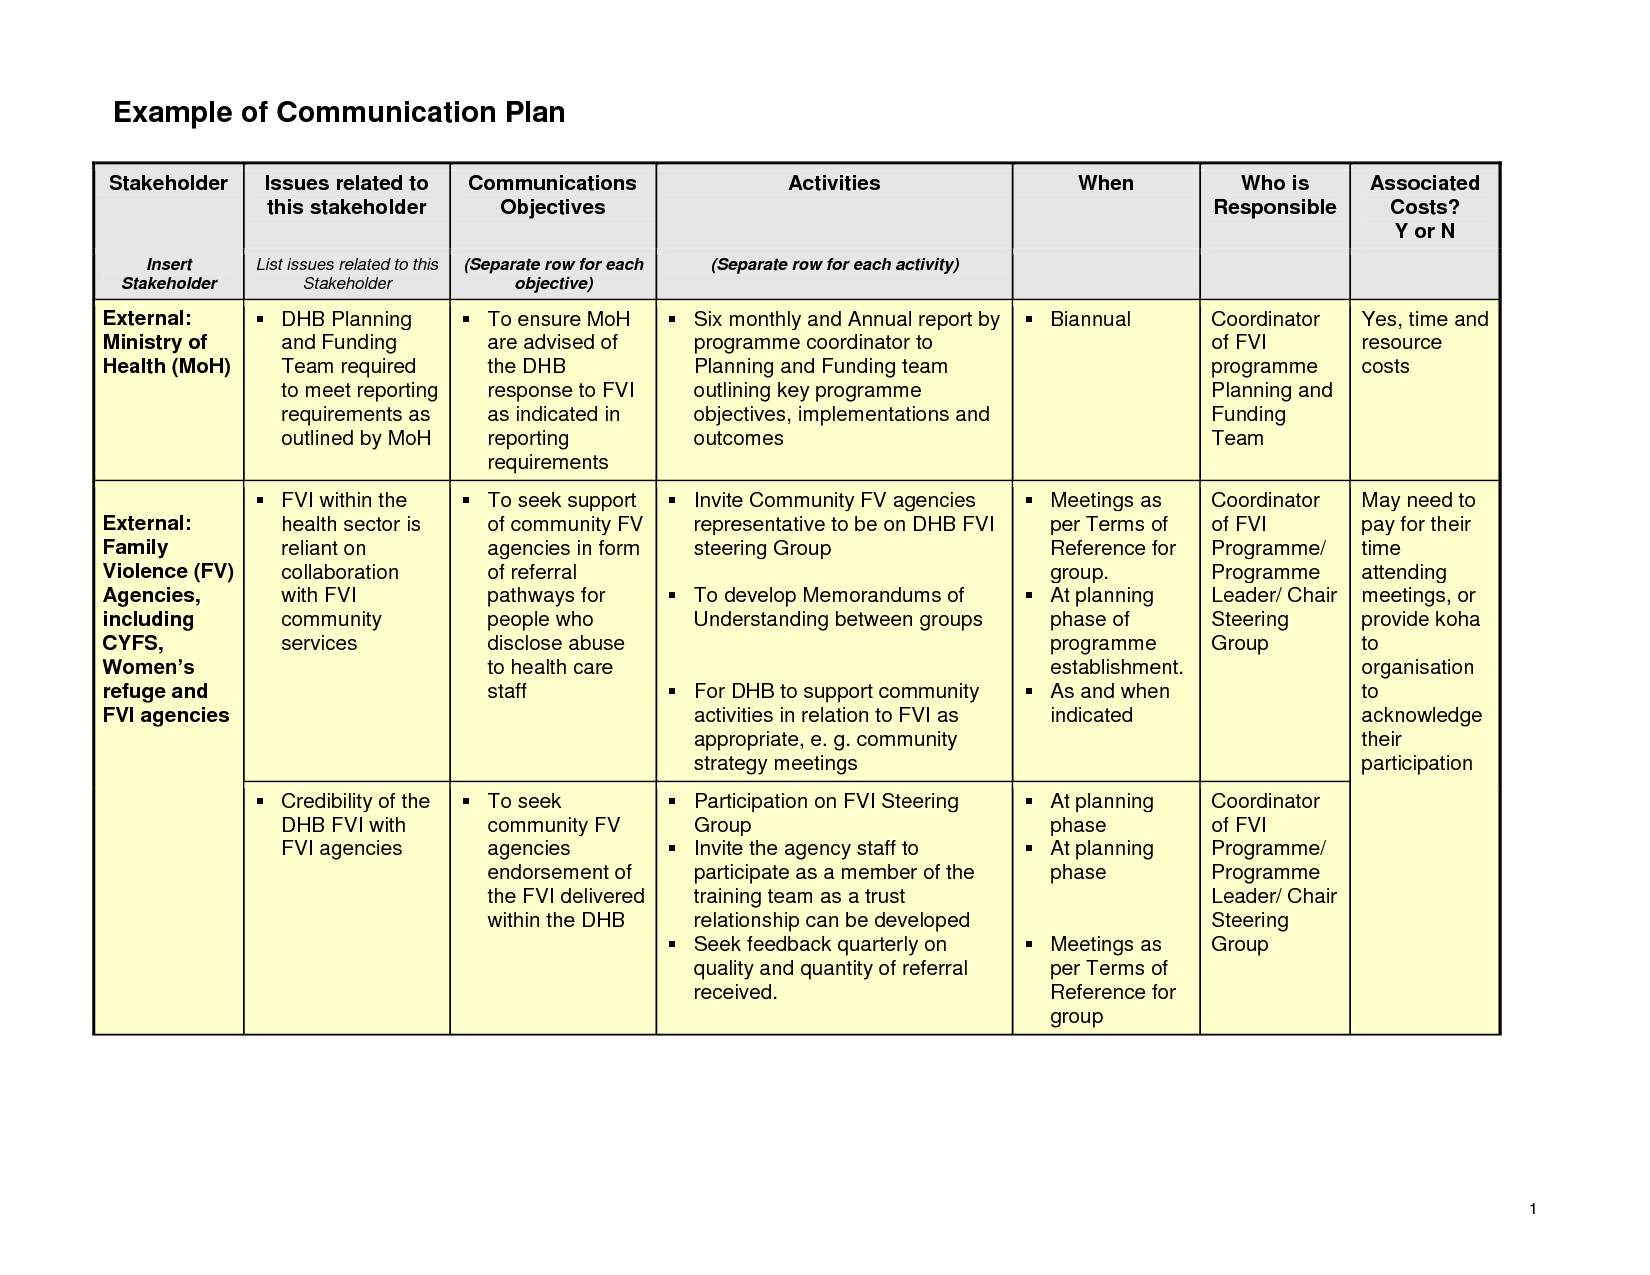 comms plan template - ideas for a communication planning example of